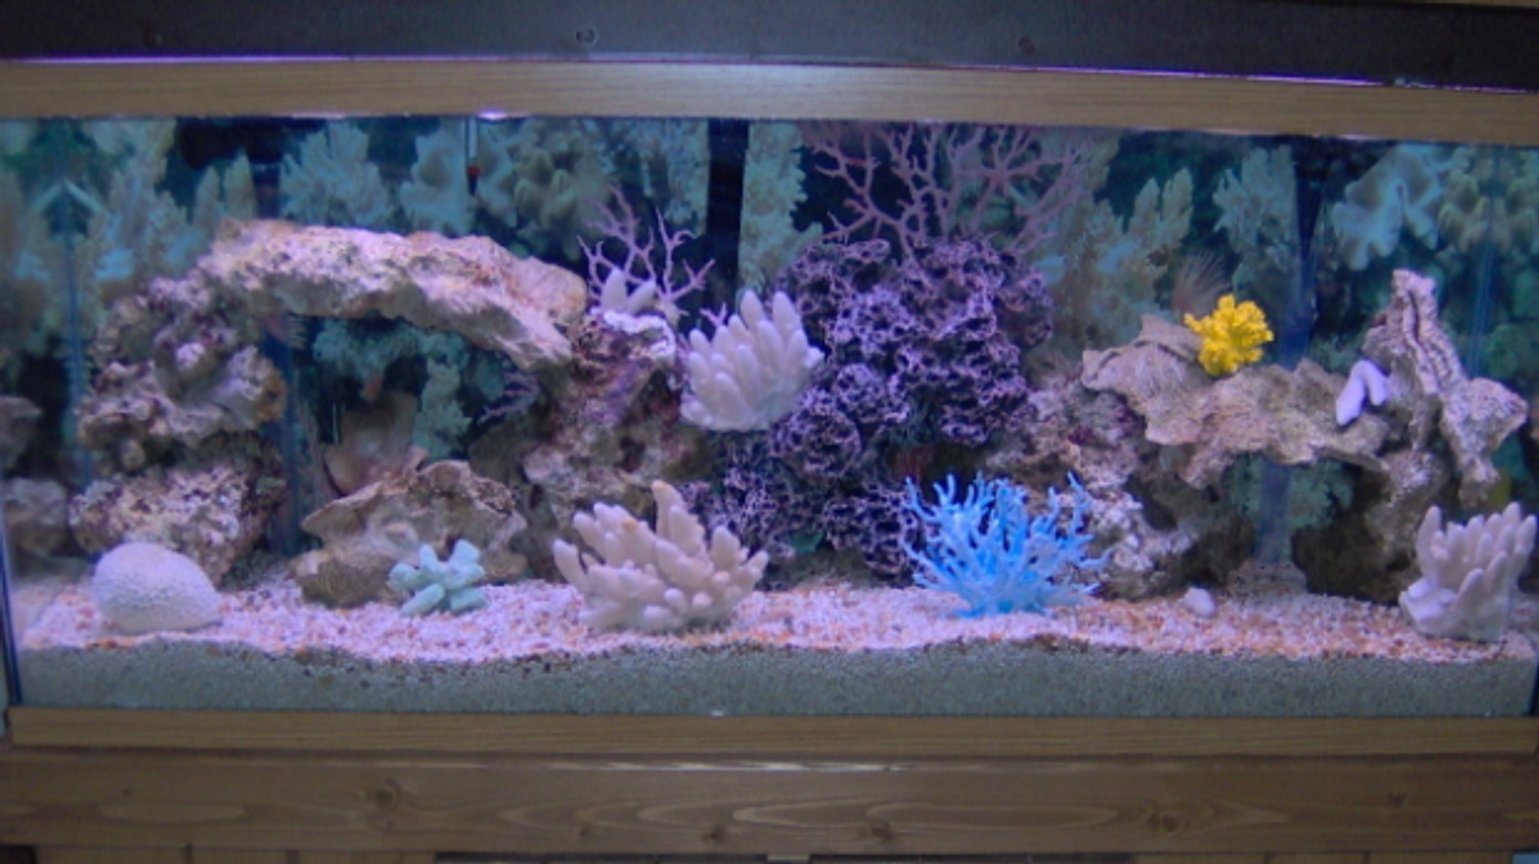 55 gallons saltwater fish tank (mostly fish, little/no live coral) - New tank, no fish yet